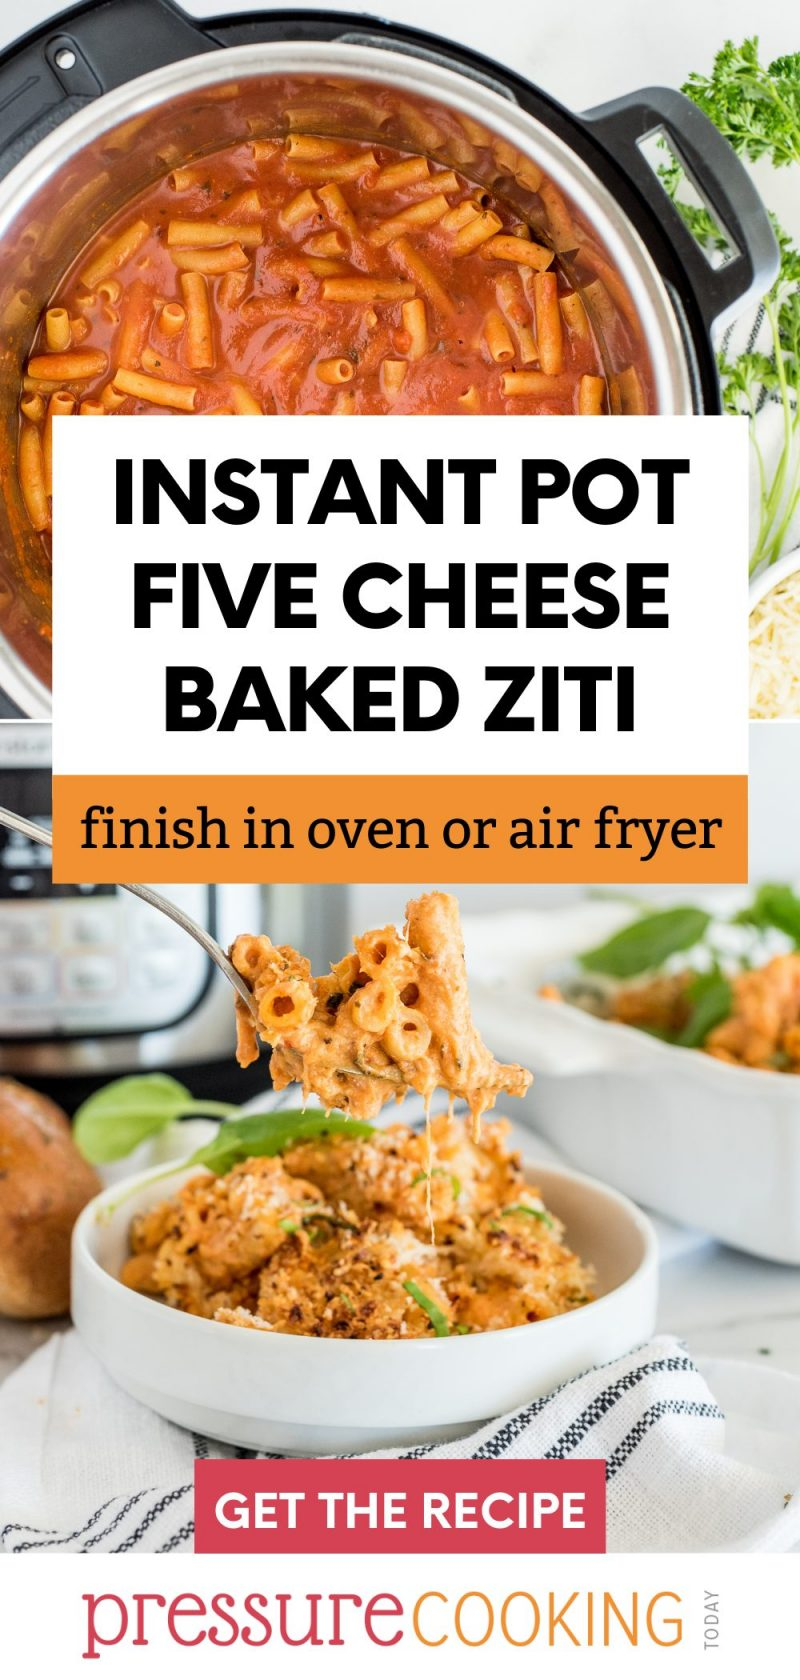 A two-image pinterest pin promoting Instant Pot five cheese baked ziti. The top image shows the pasta in the Instant Pot before cooking, the  bottom image shows a spoonful of the ziti in front of an Instant Pot.